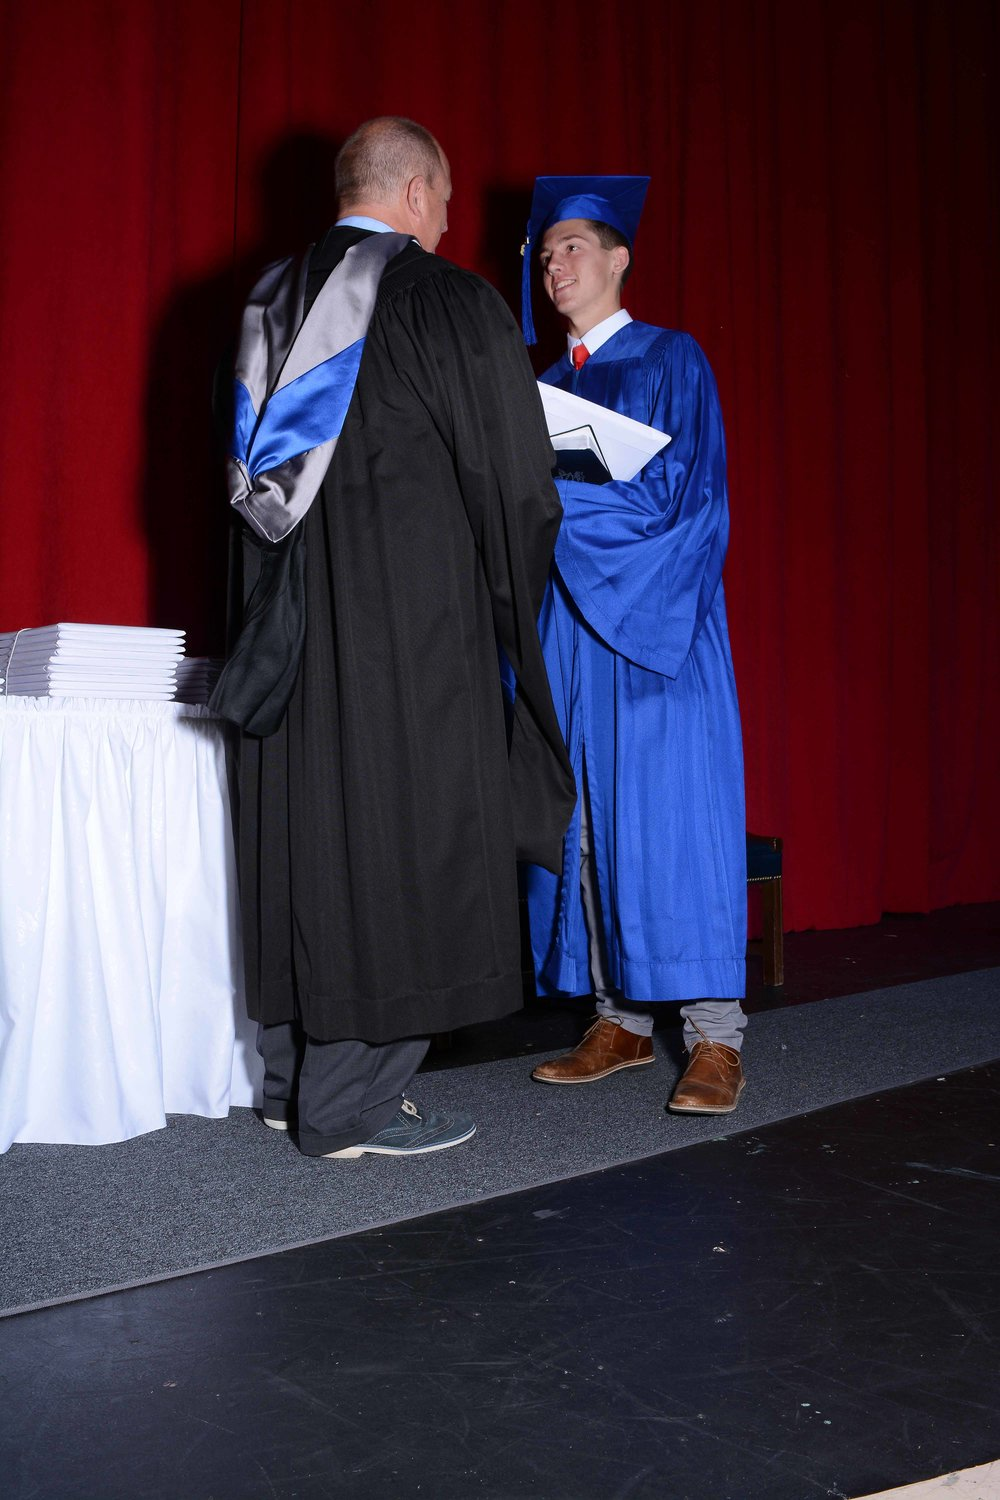 May14 Commencement115.jpg